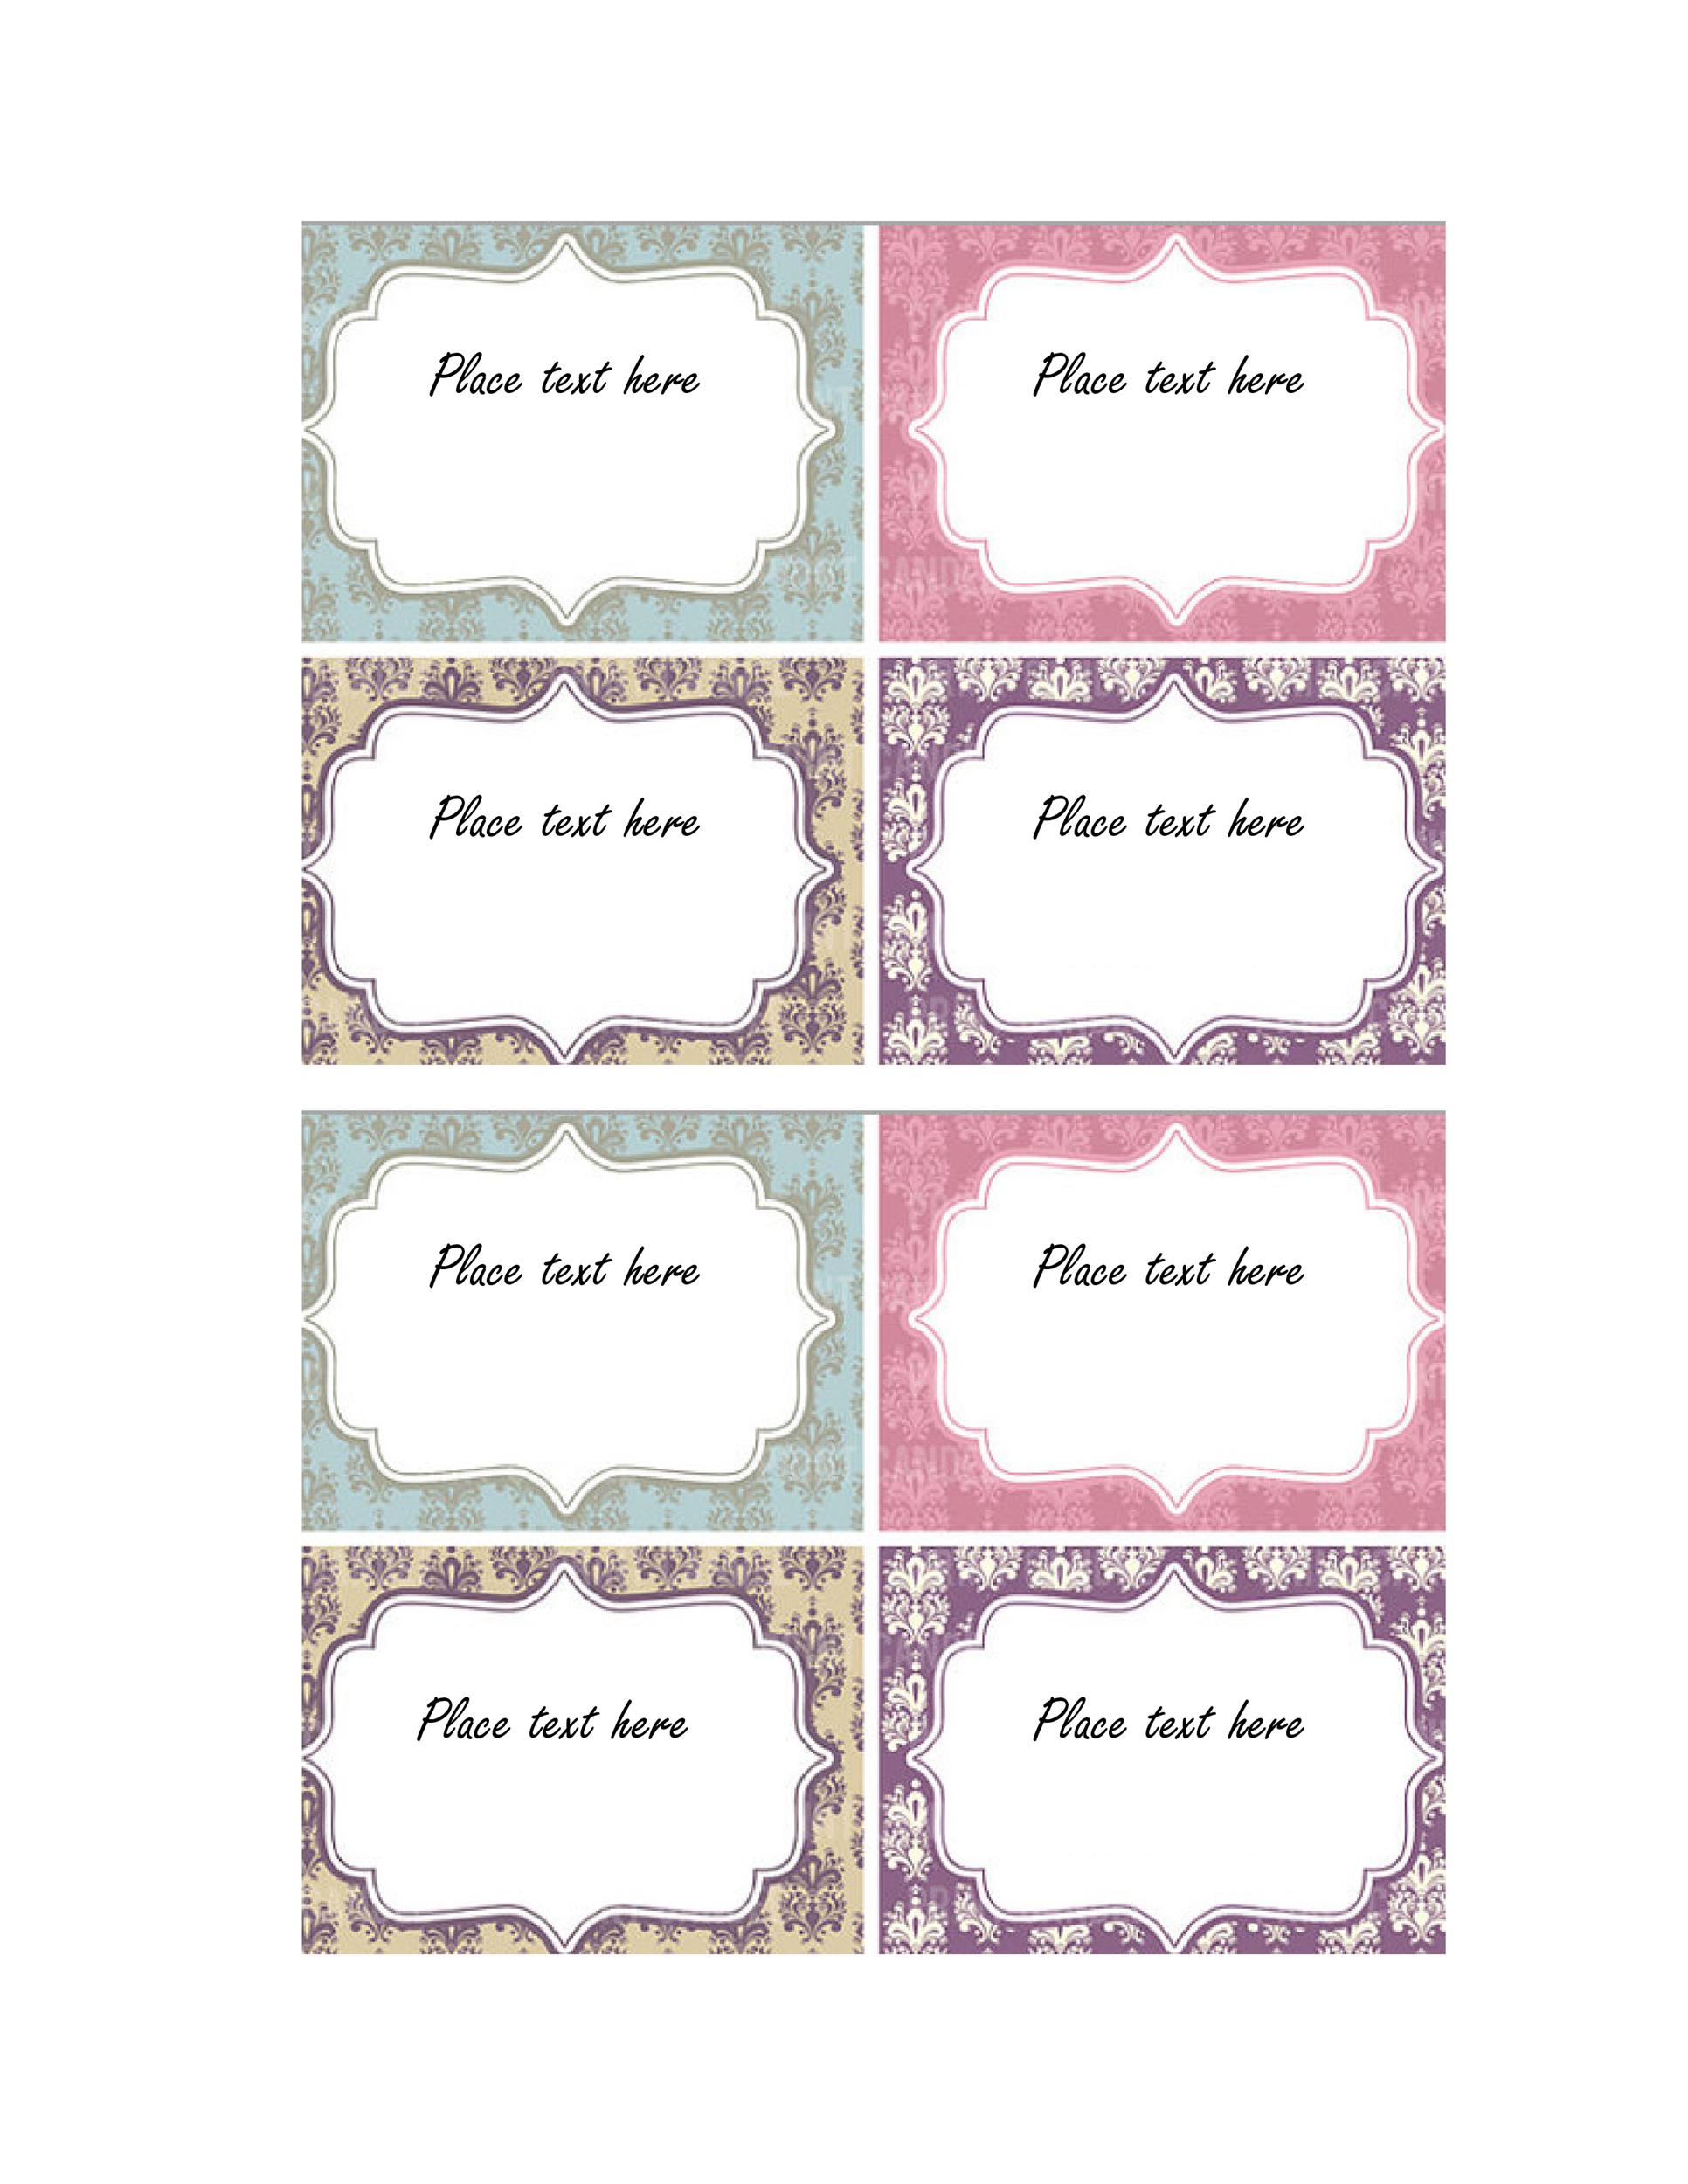 graphic relating to Free Printable Blank Gift Tags known as 44 No cost Printable Reward Tag Templates ᐅ Template Lab